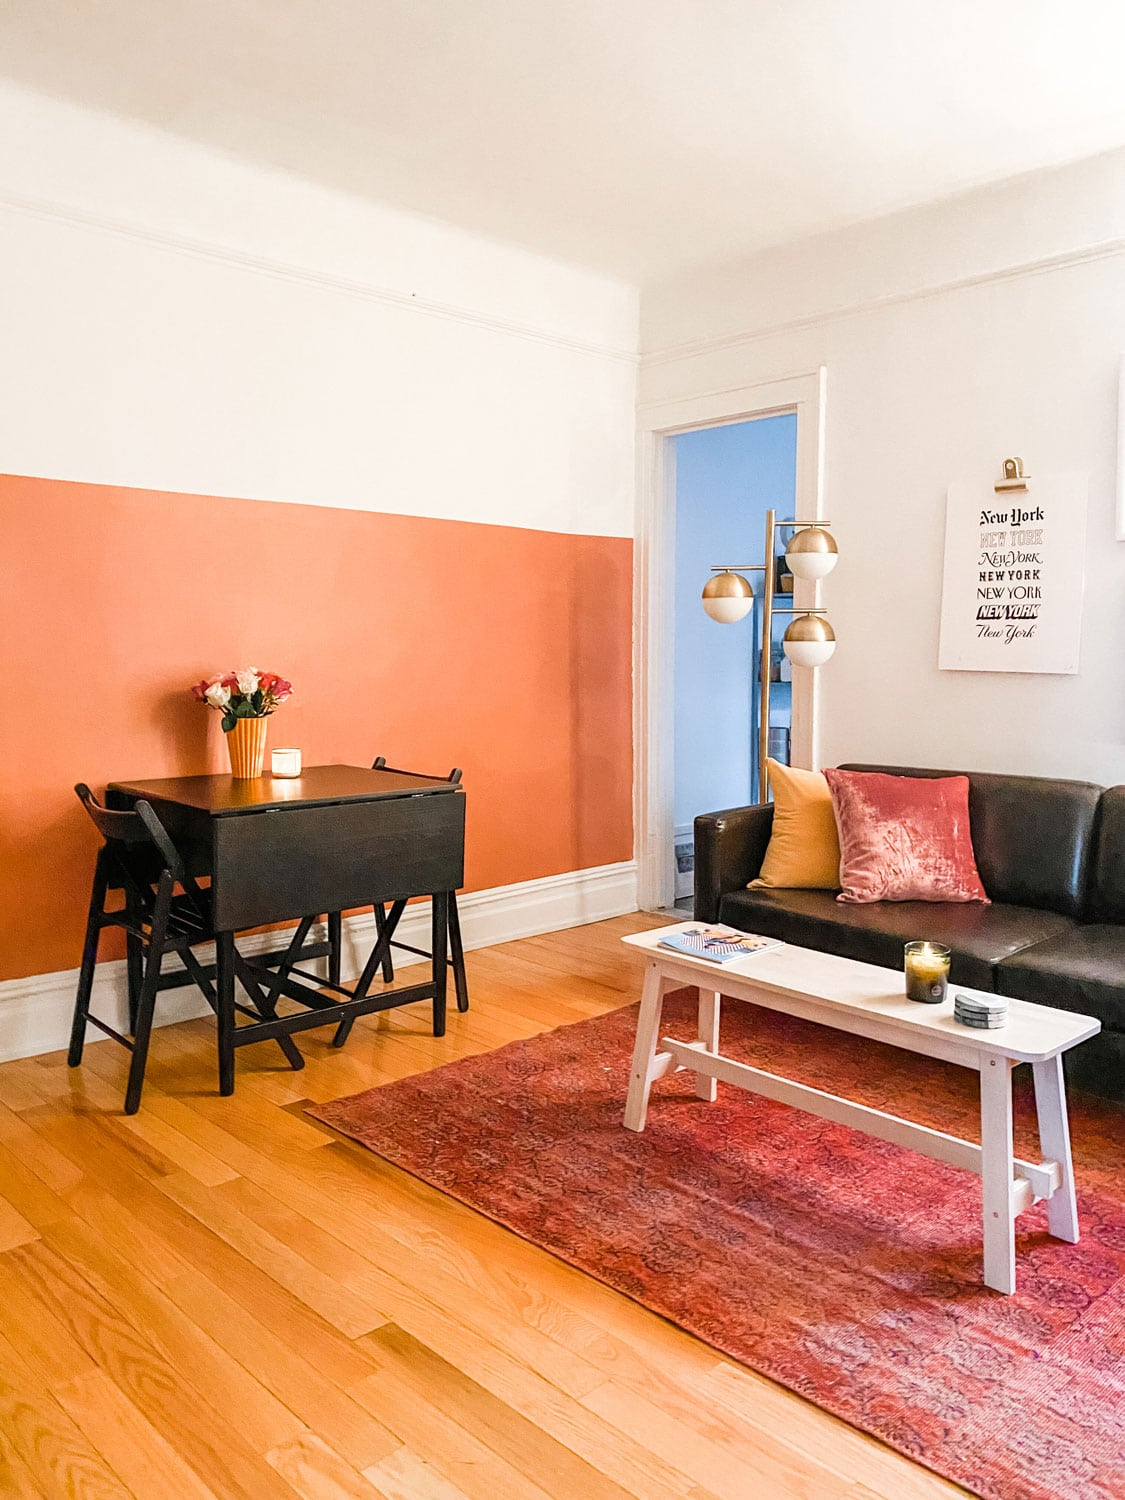 small black table and chairs against a pink half wall